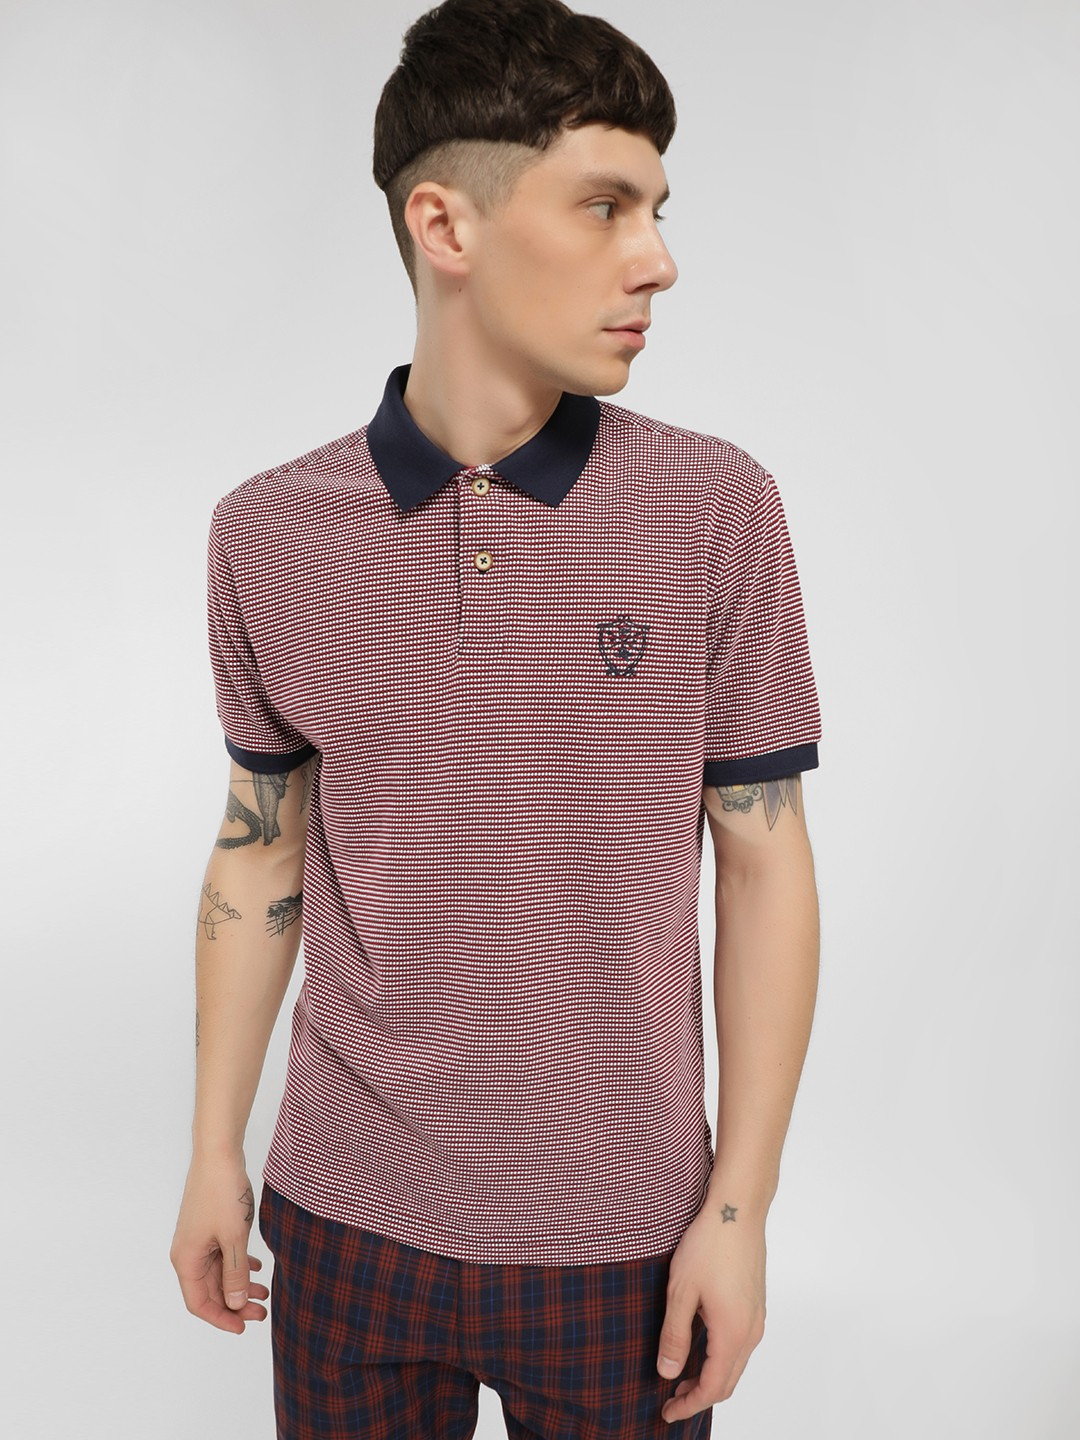 SCULLERS Brown Textured Short Sleeve Polo Shirt 1